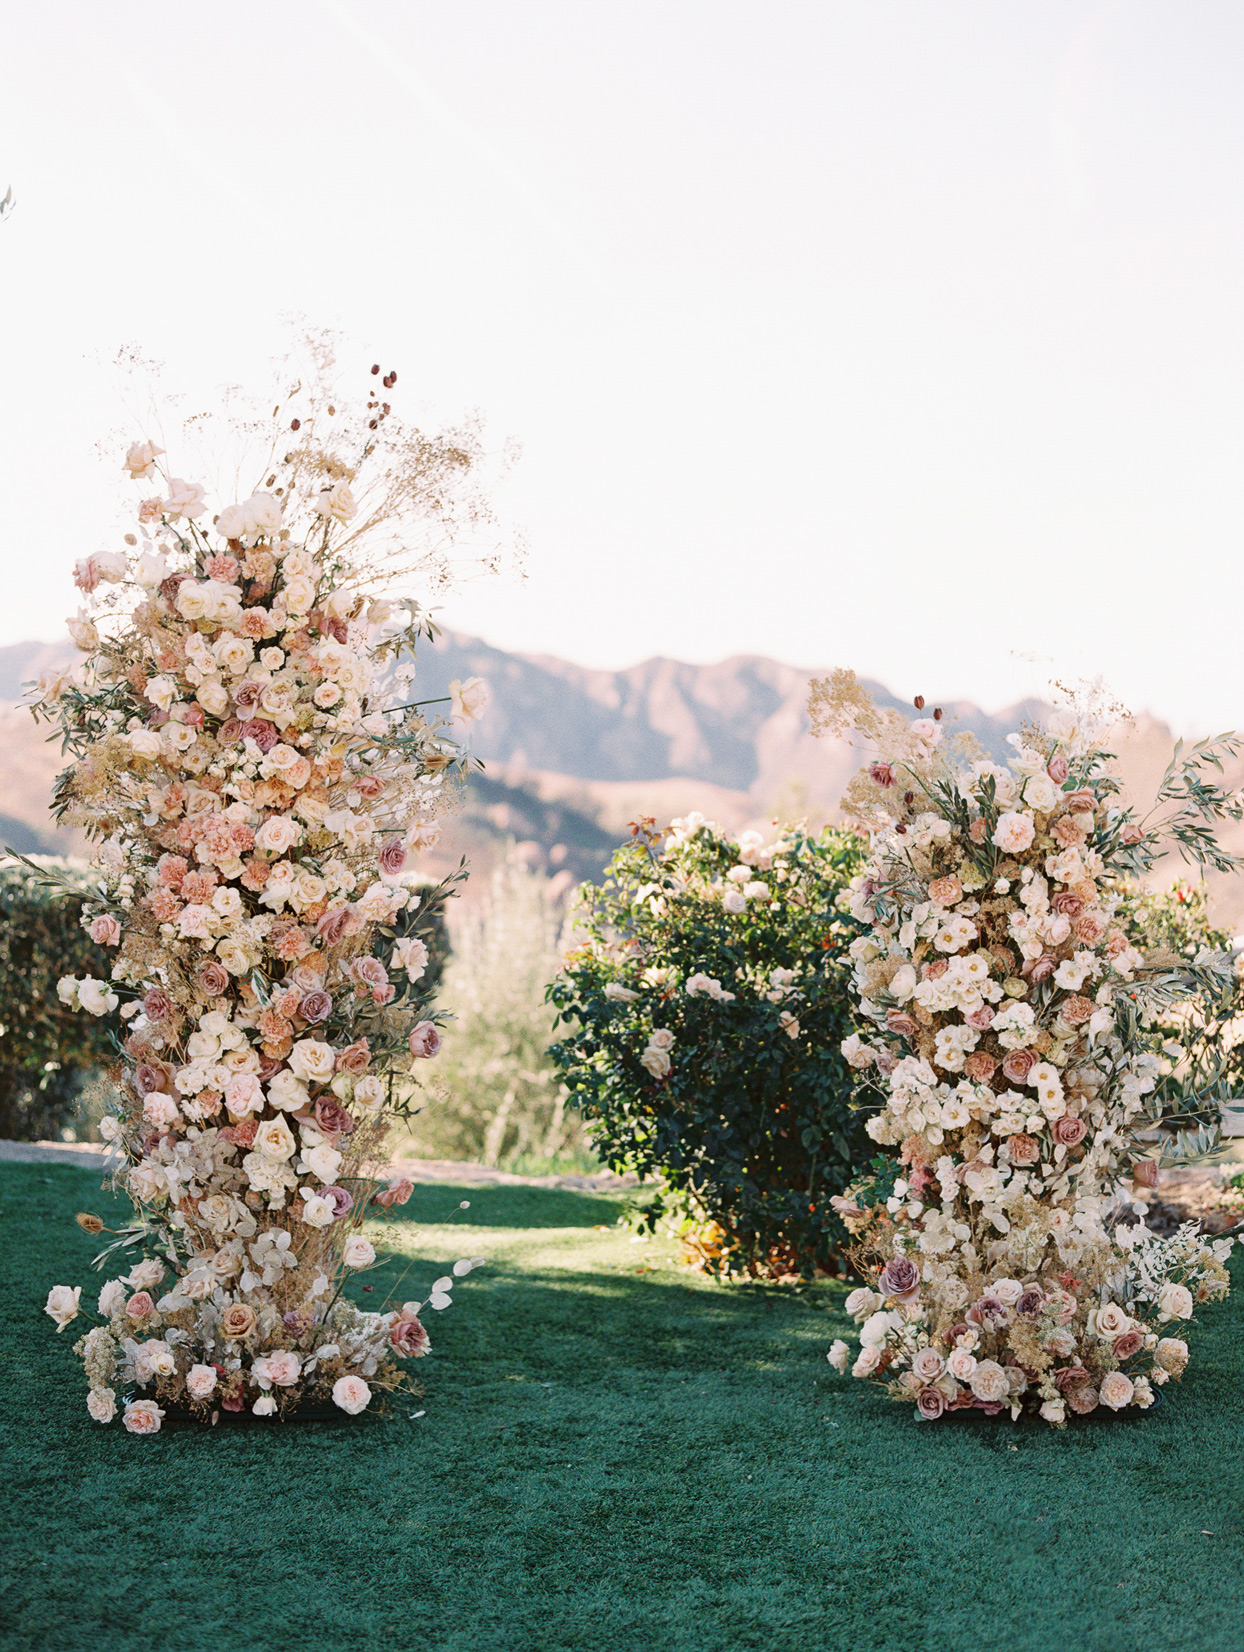 Ceremony structure of two posts built on wheels decorated with dried flowers in cream and pink tones